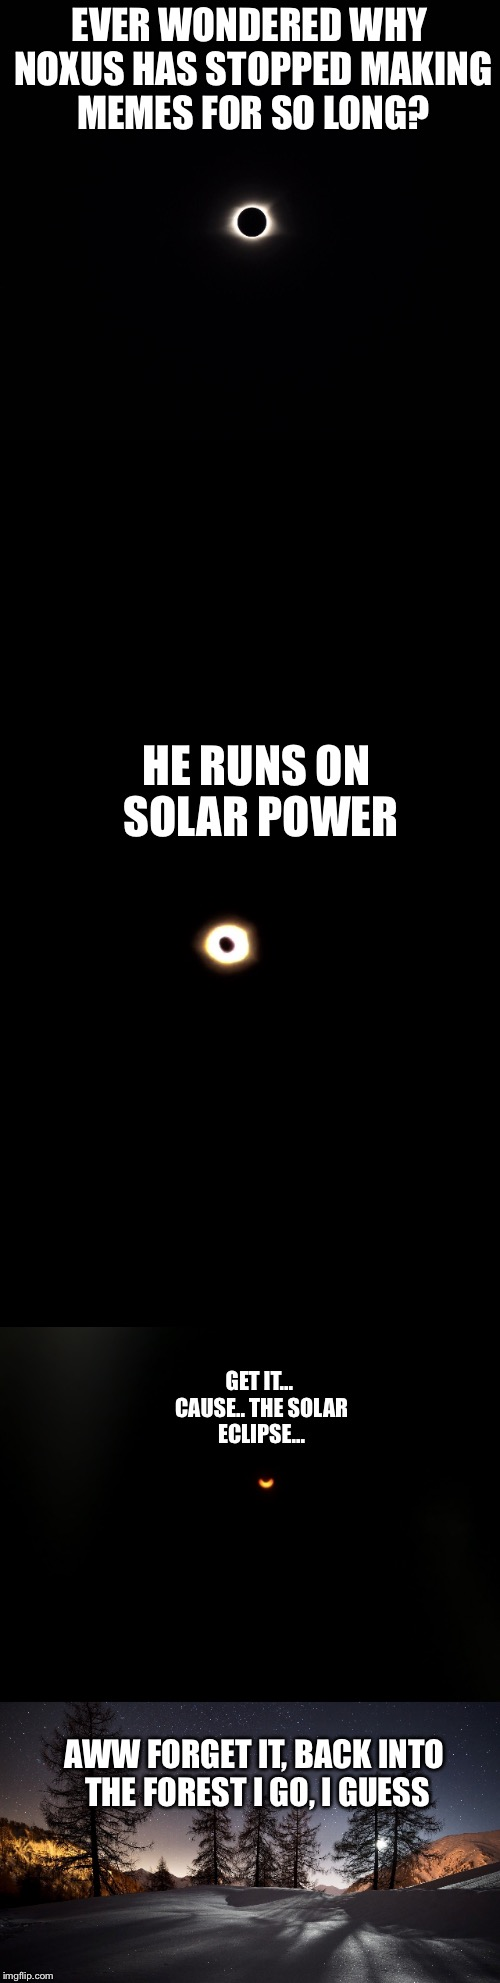 Bad Pun Solar System | EVER WONDERED WHY NOXUS HAS STOPPED MAKING MEMES FOR SO LONG? HE RUNS ON SOLAR POWER GET IT... CAUSE.. THE SOLAR ECLIPSE... AWW FORGET IT, B | image tagged in noxus,bad pun solar system,hiatus,i live in the forest,hi,meme | made w/ Imgflip meme maker